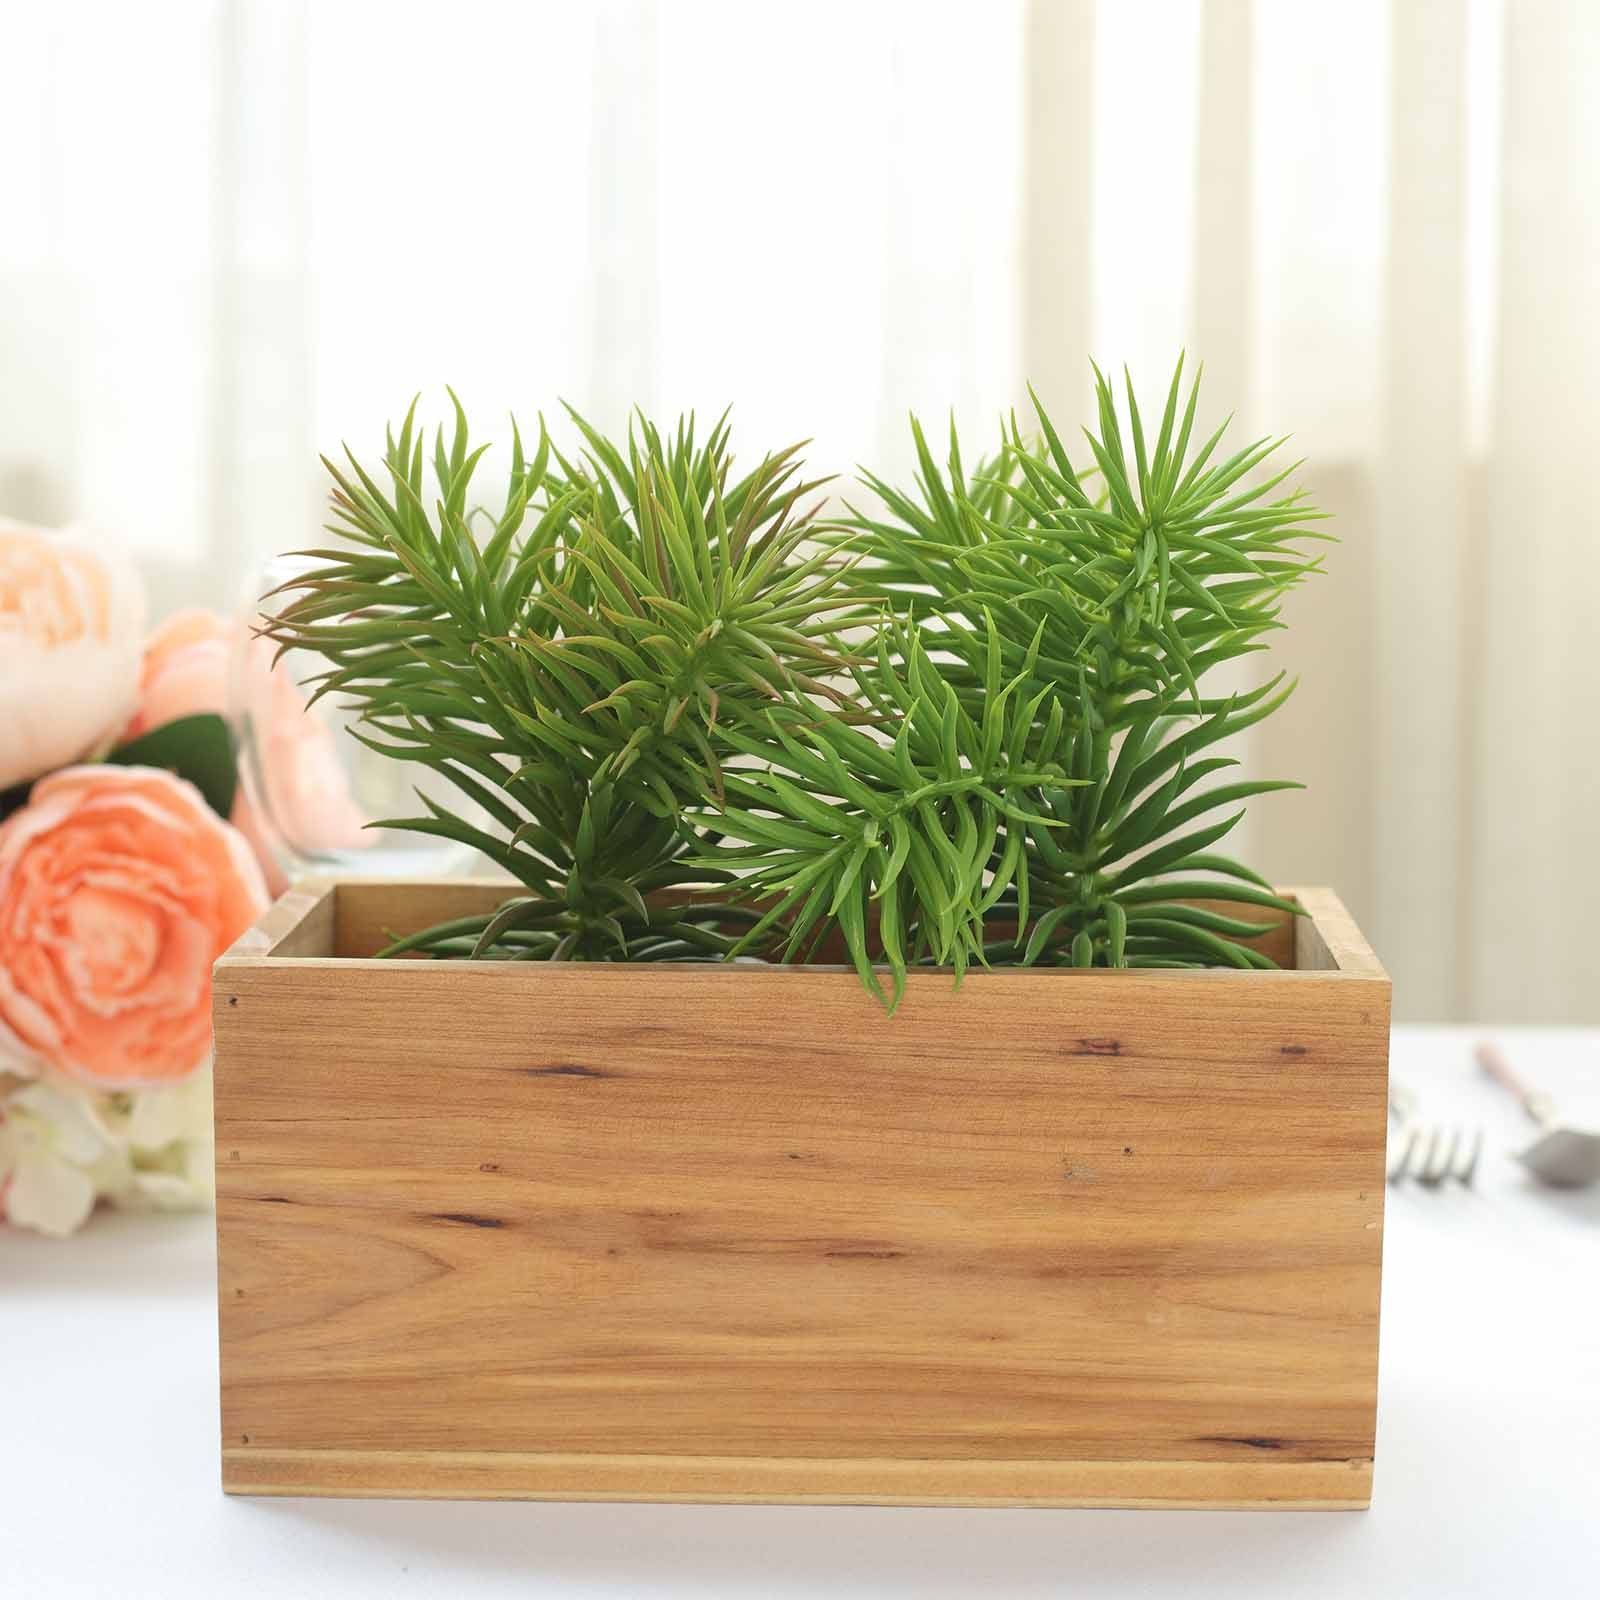 4 Pack 8x4 Natural Rectangular Wood Planter Box Set With